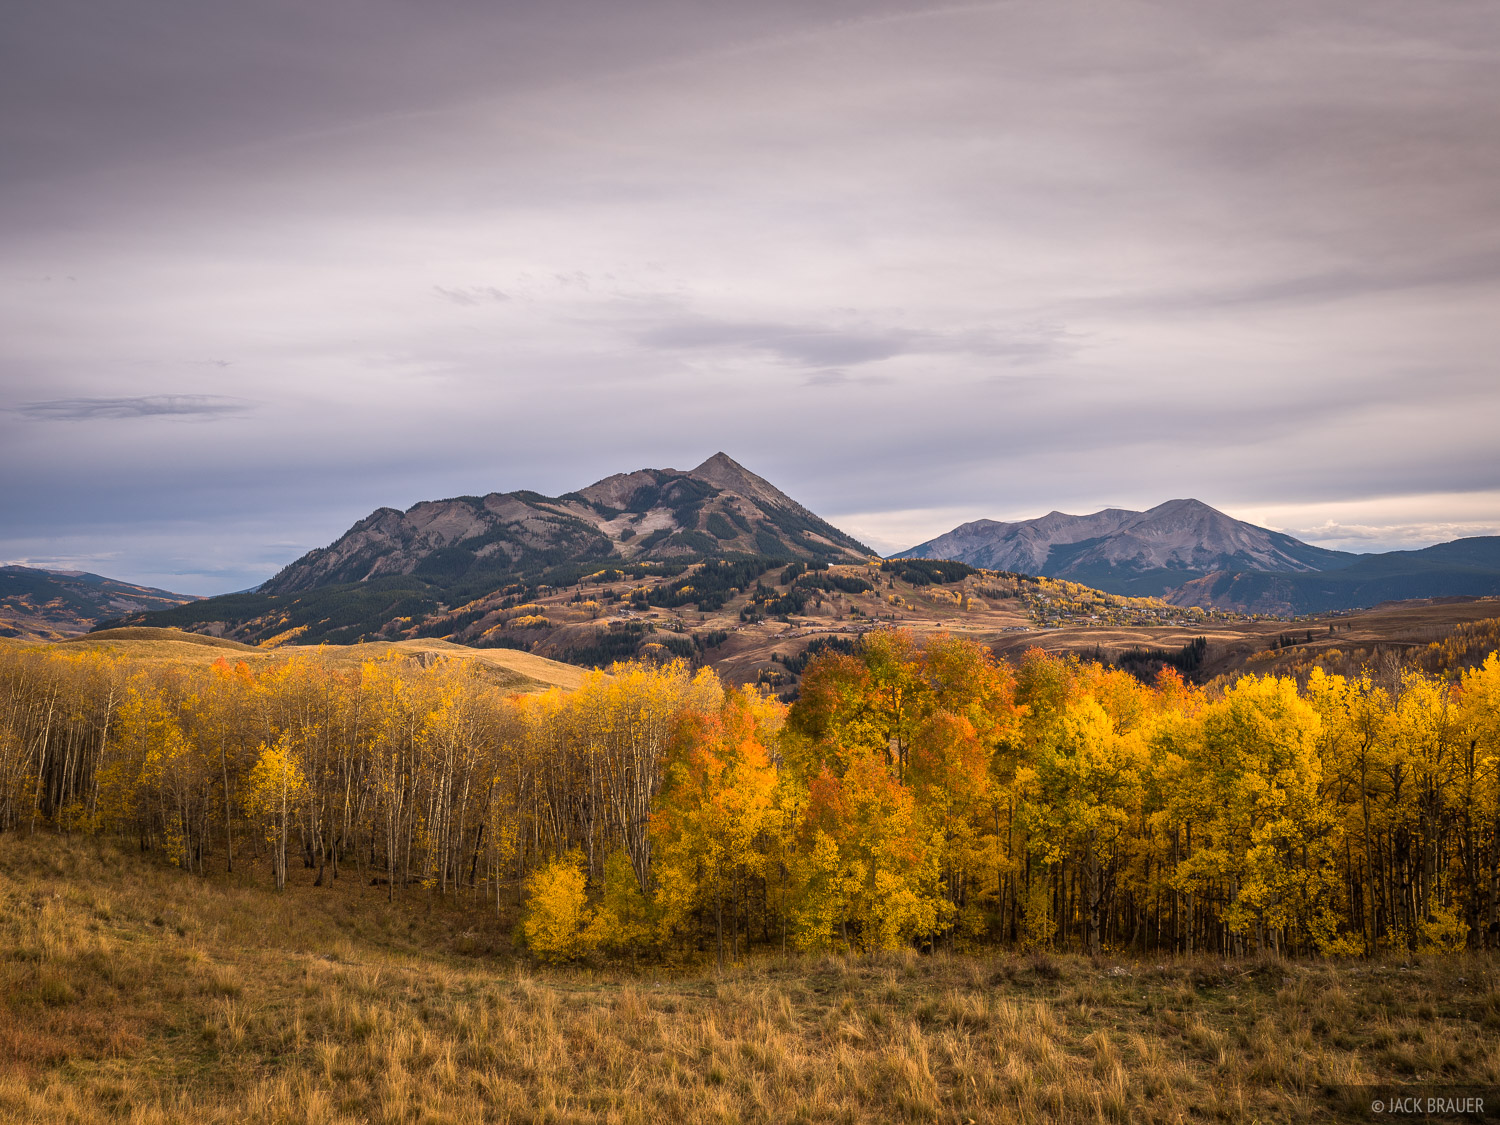 Mt. Crested Butte and colorful aspens in late September.